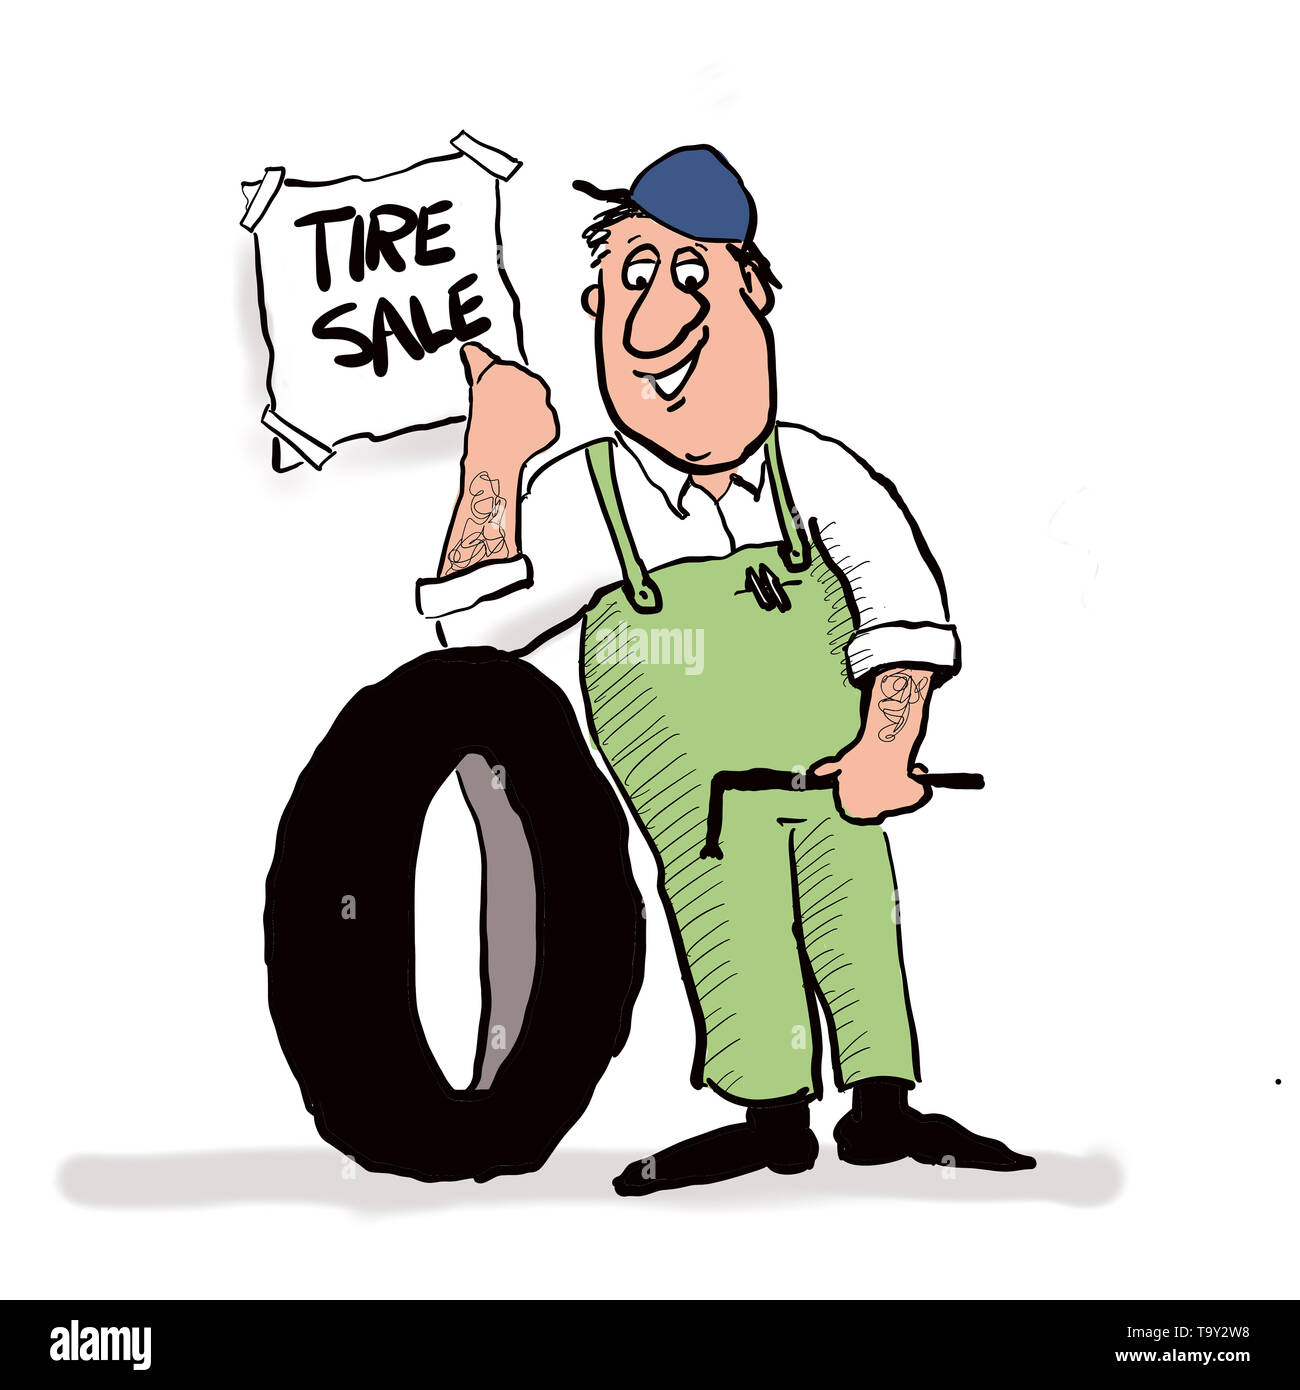 Tire Sale - Stock Image